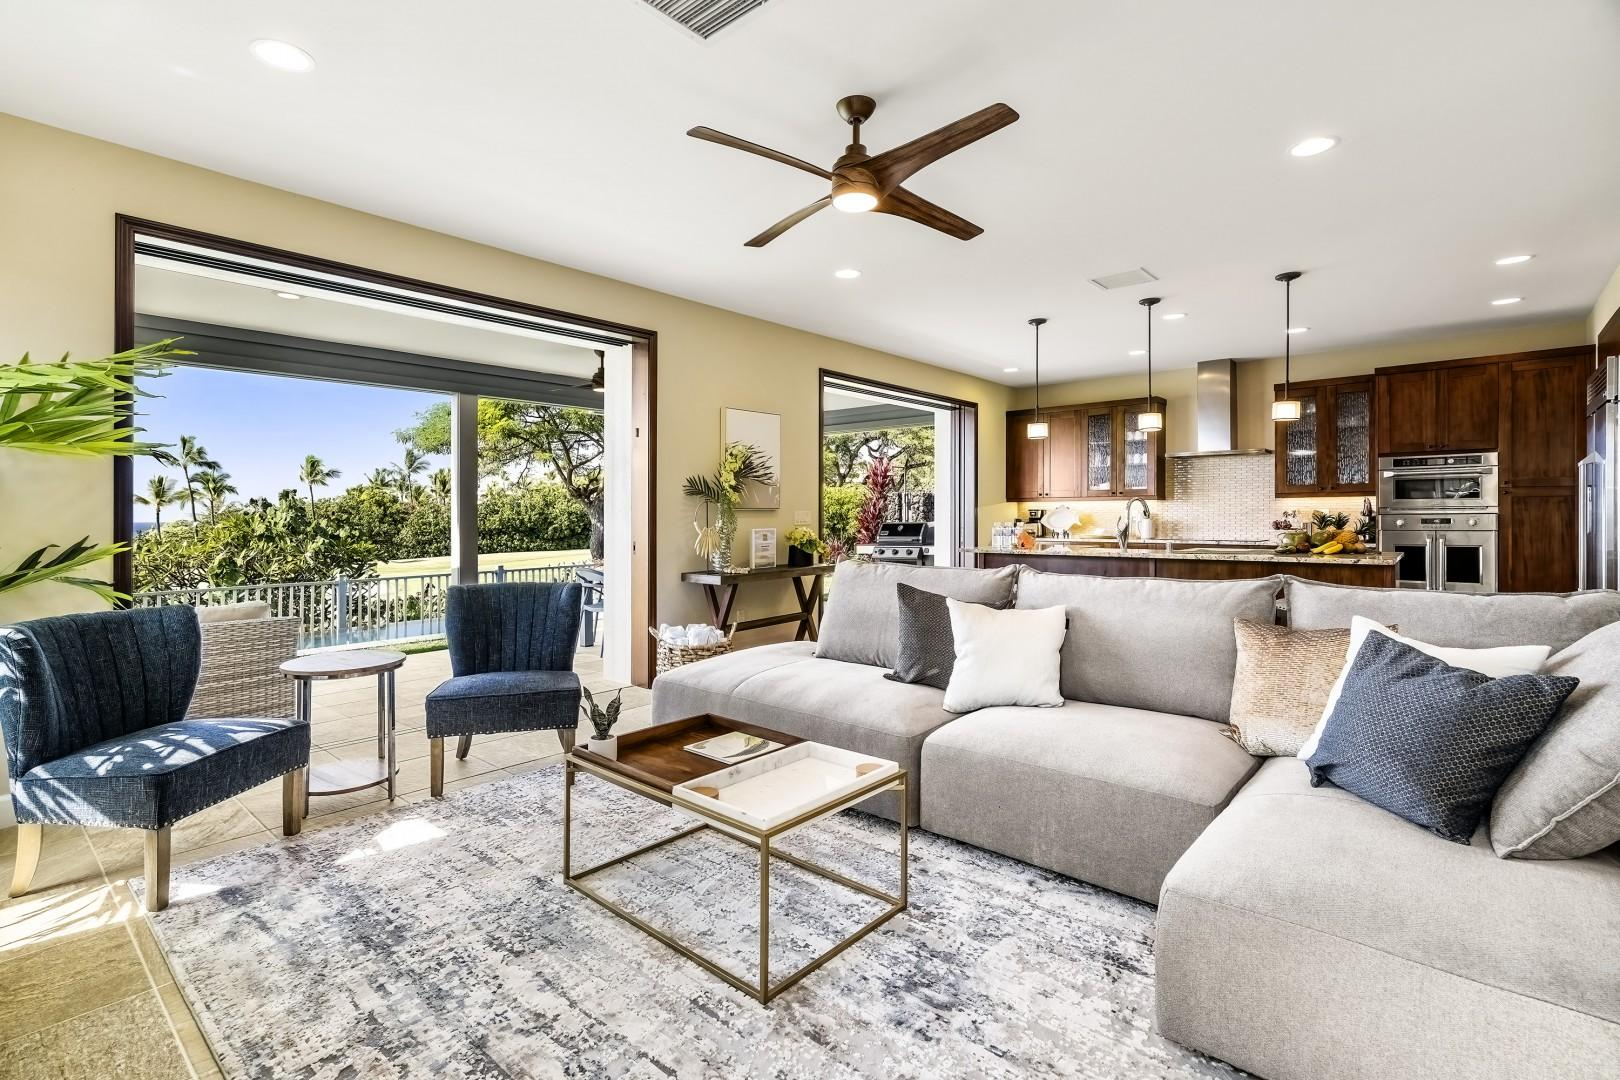 Open the large sliding doors to embrace the Hawaiian climate